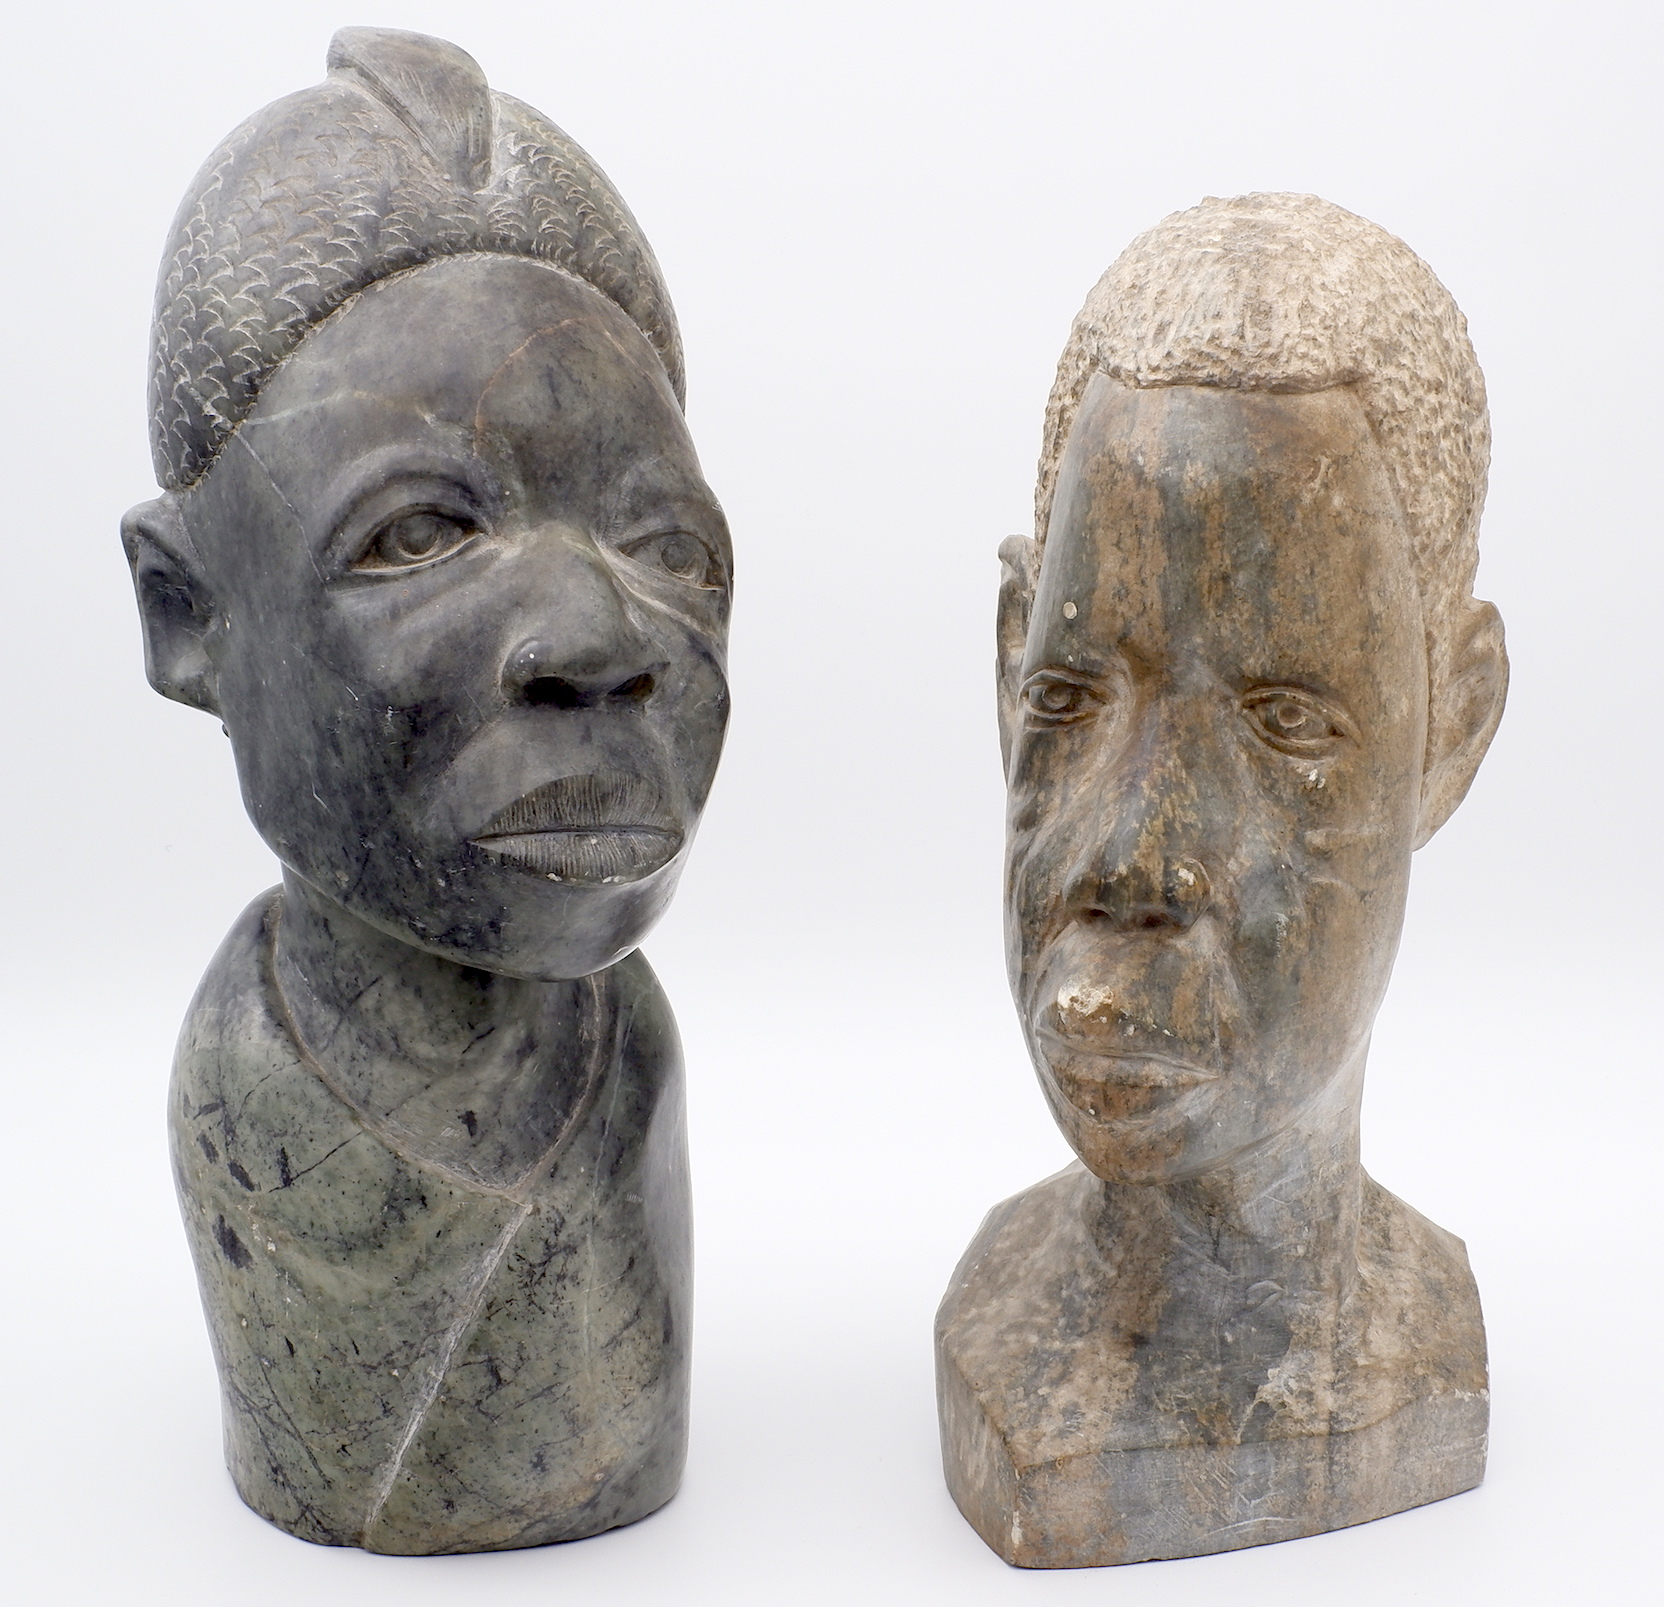 'Two Signed African Shona Stone Busts'